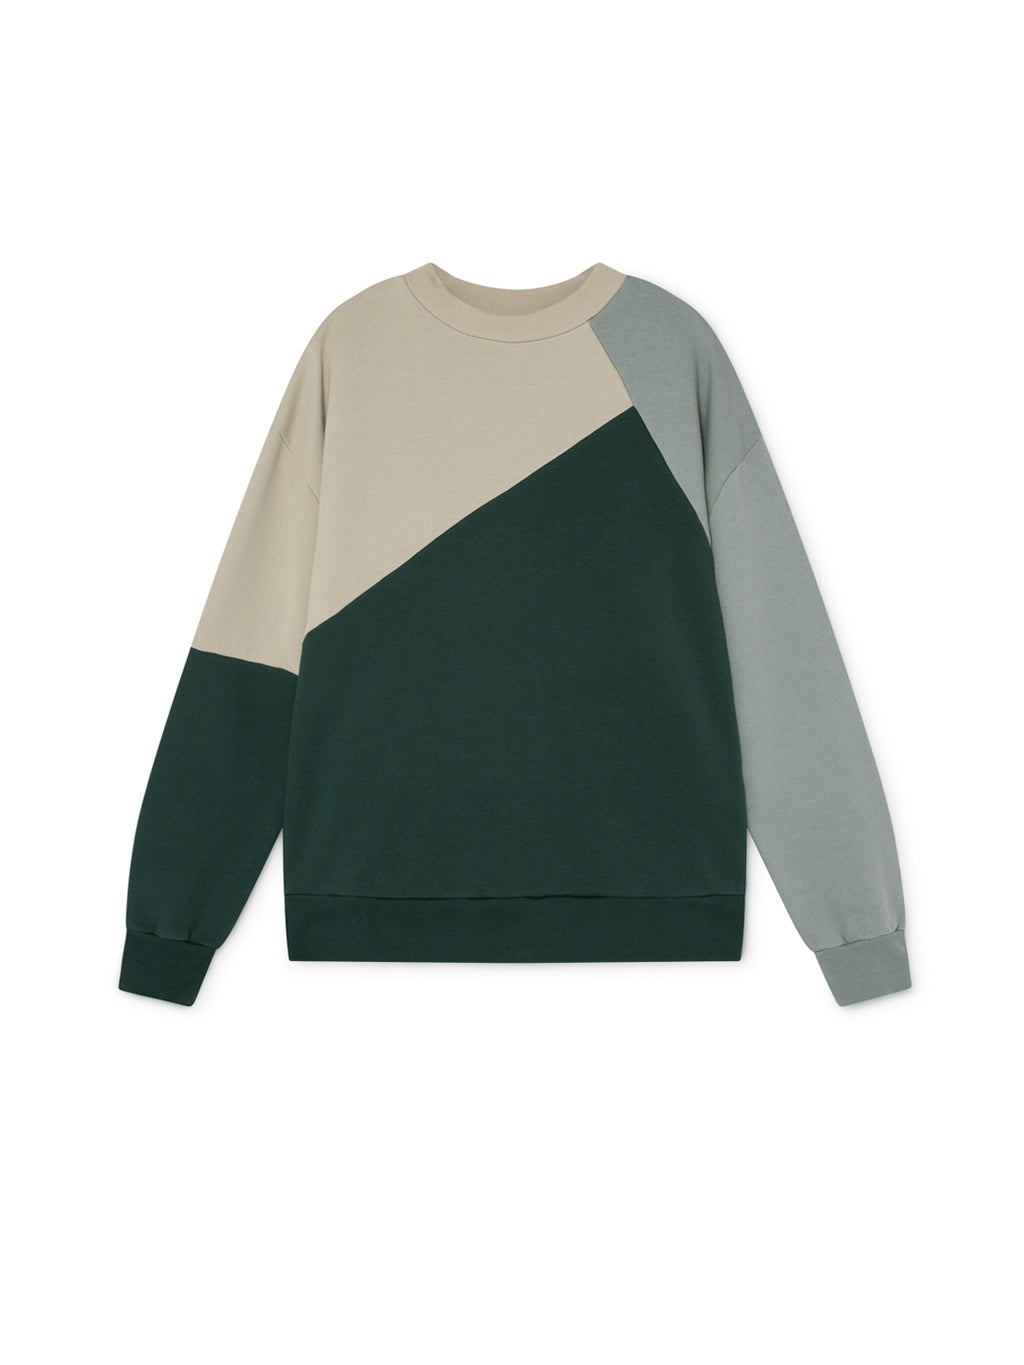 TWOTHIRDS Womens Sweat: Fair - Green front